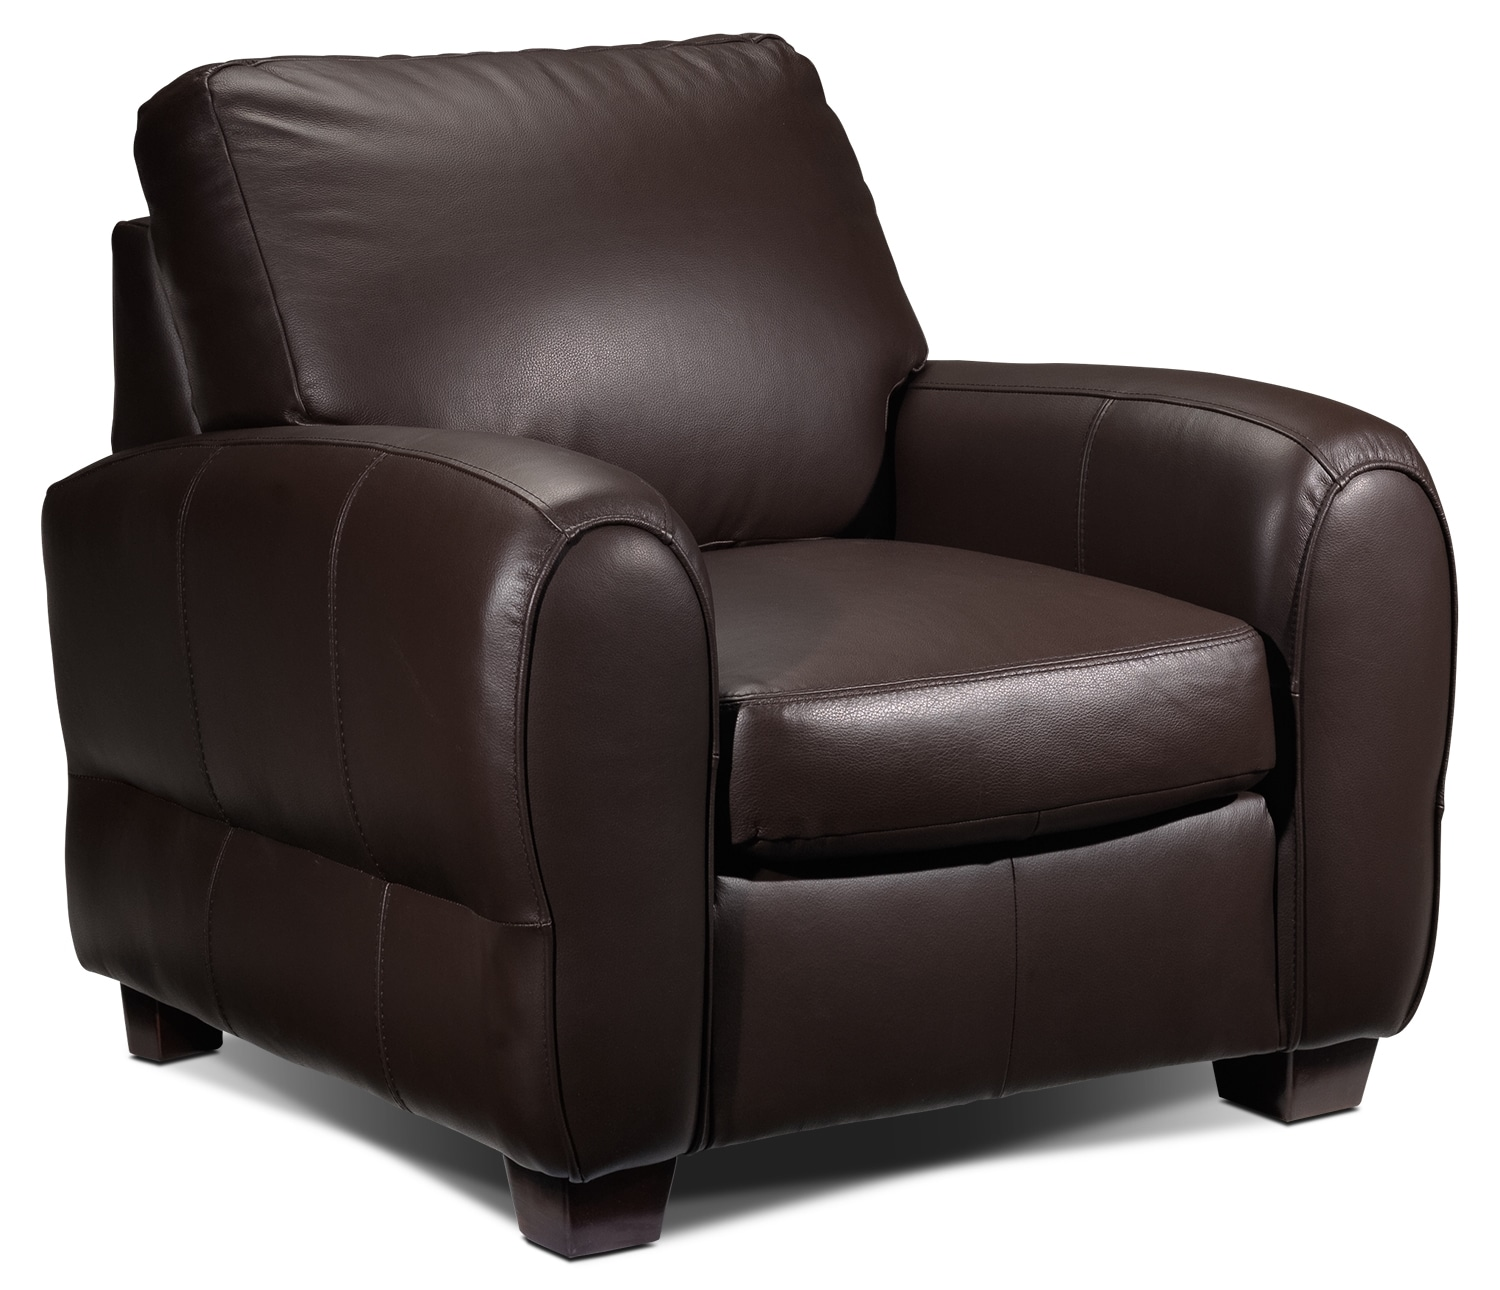 Living Room Furniture - Sheldon Chair